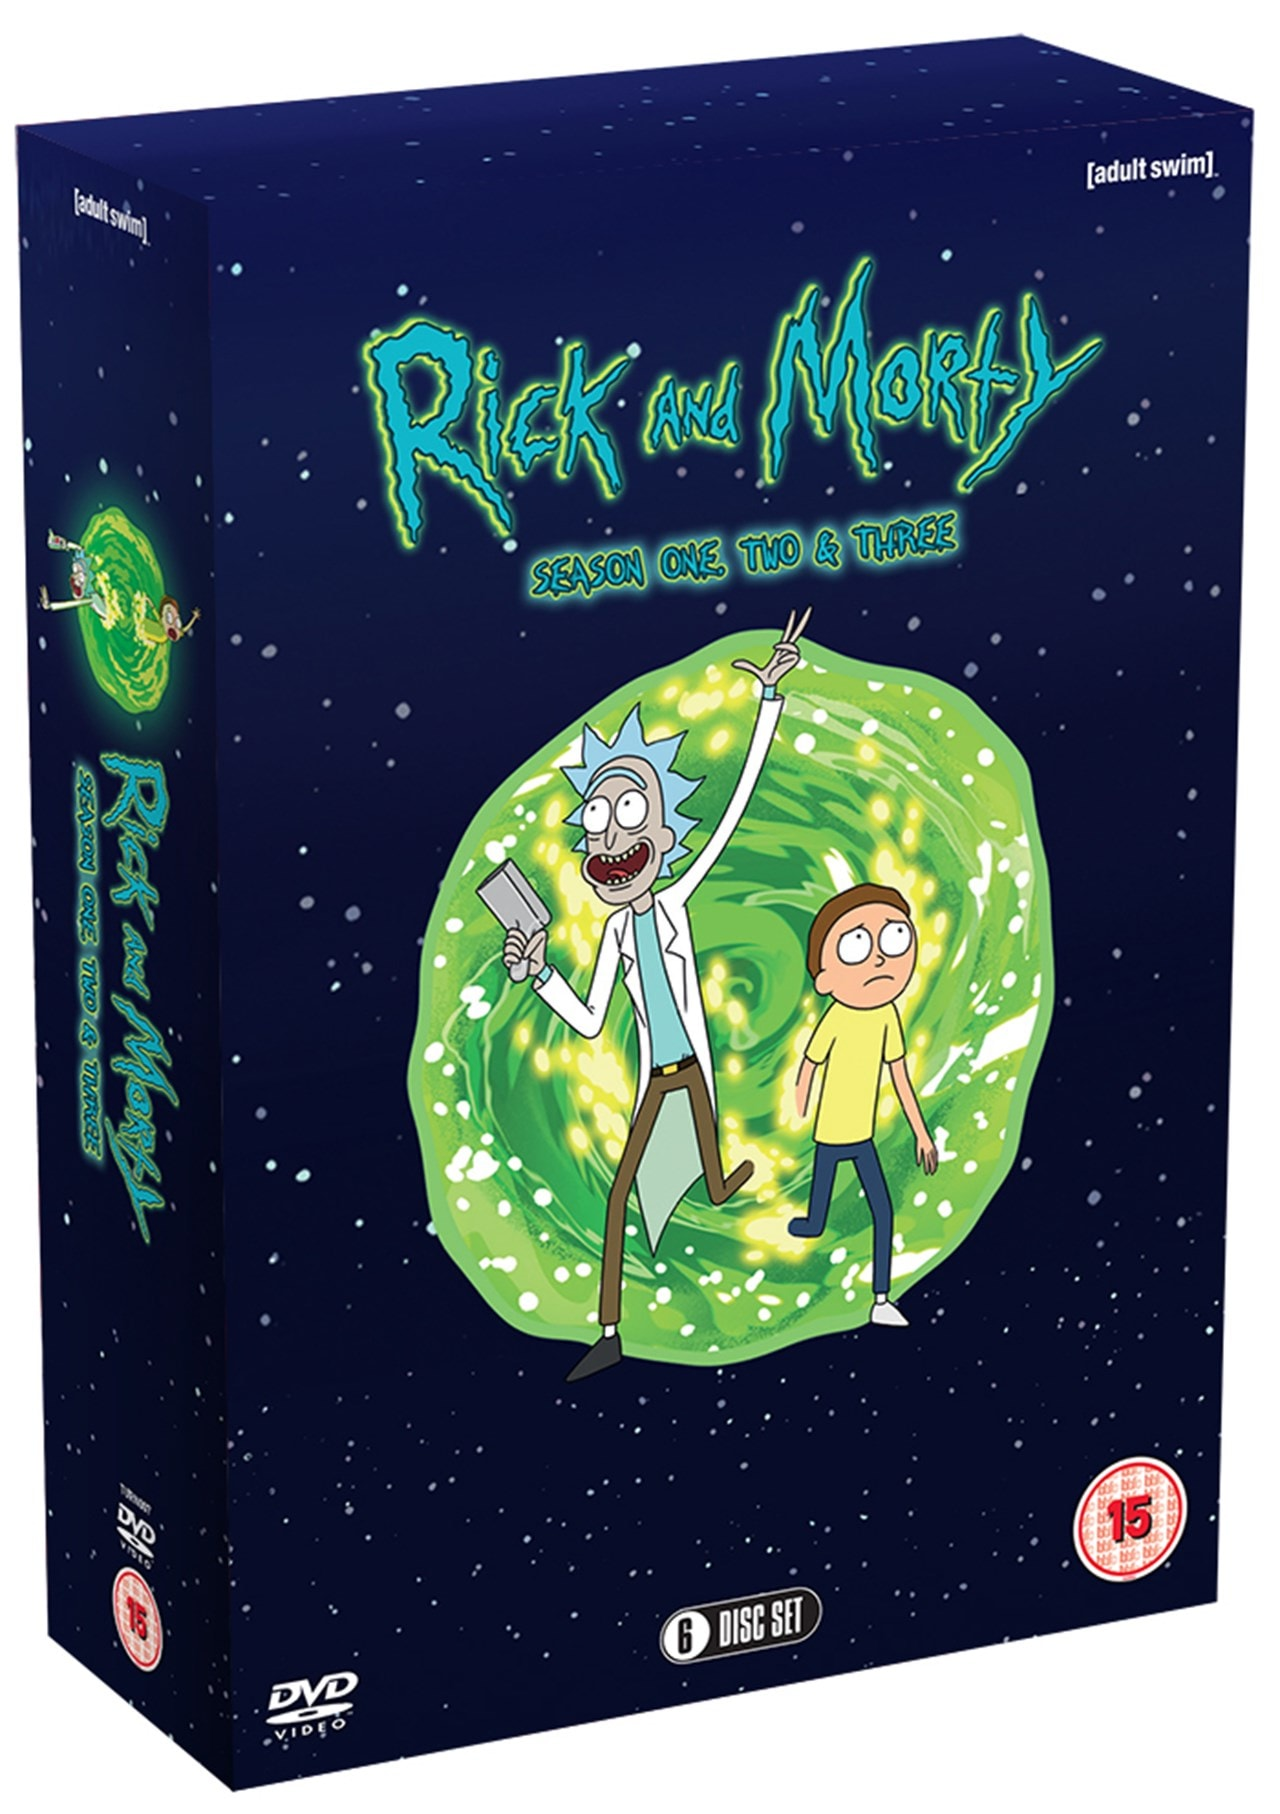 Rick and Morty: Season One, Two & Three - 2